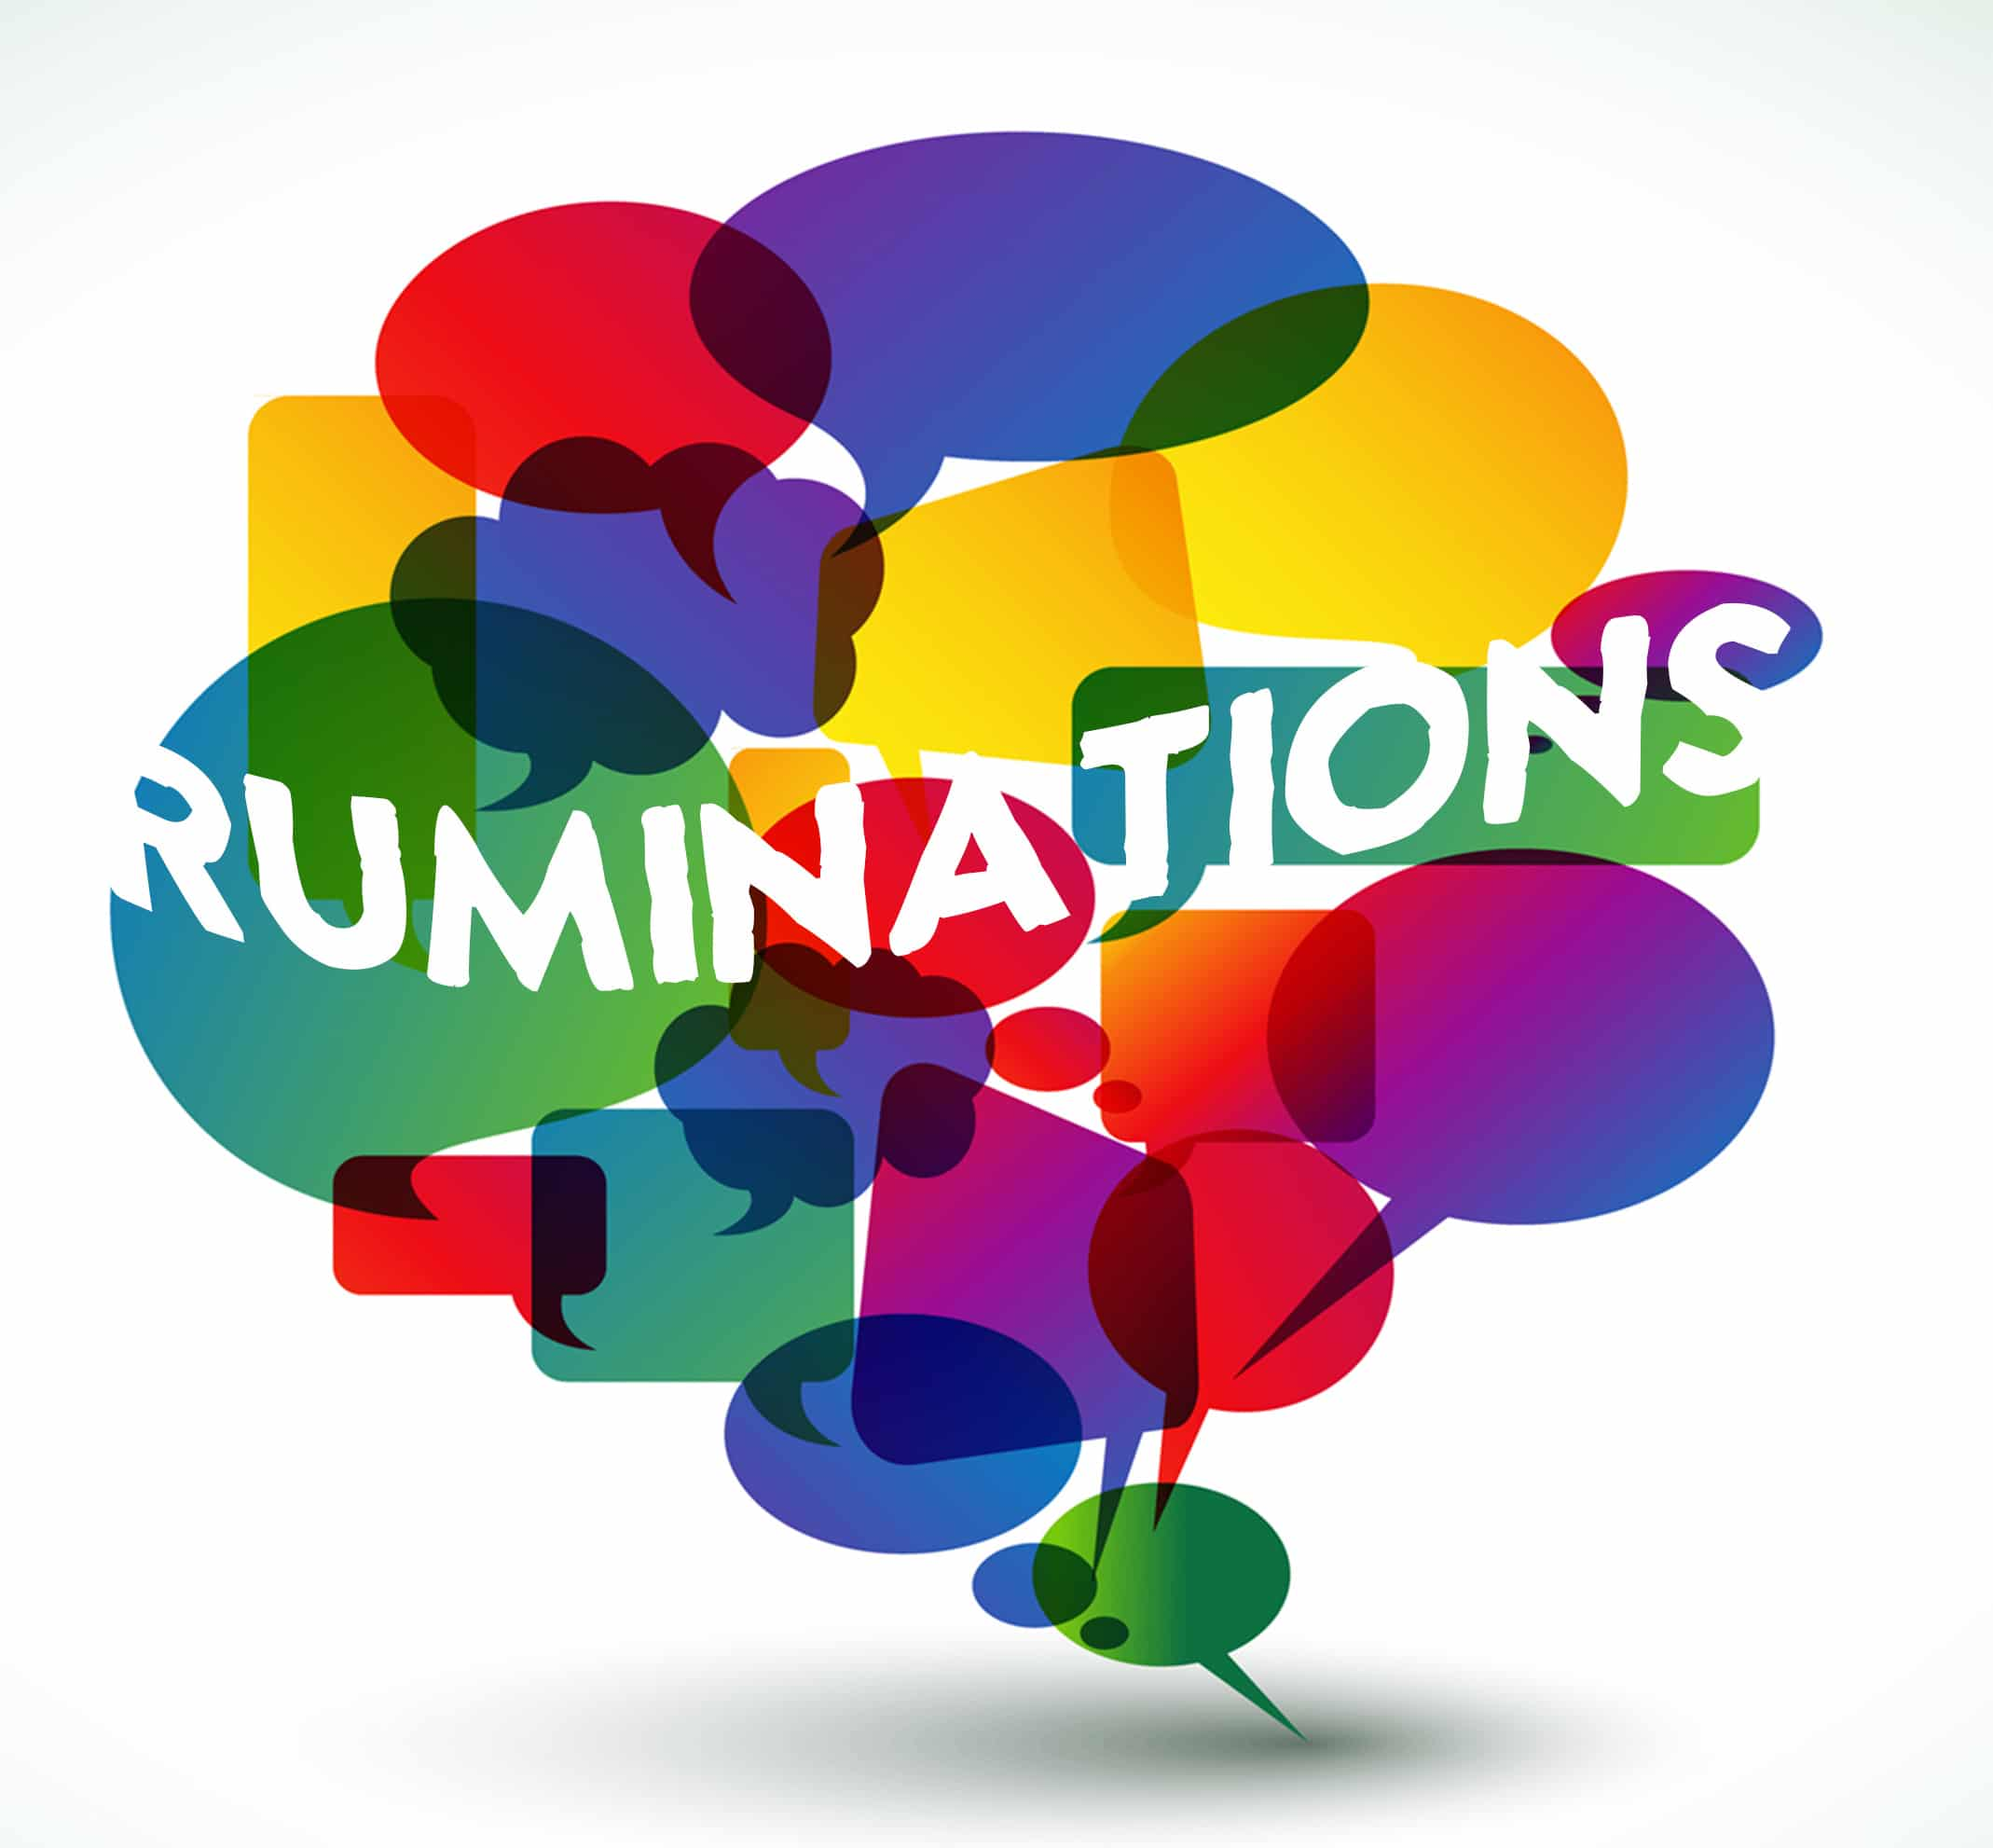 RUMINATIONS - Empowerment though Self-Reflection